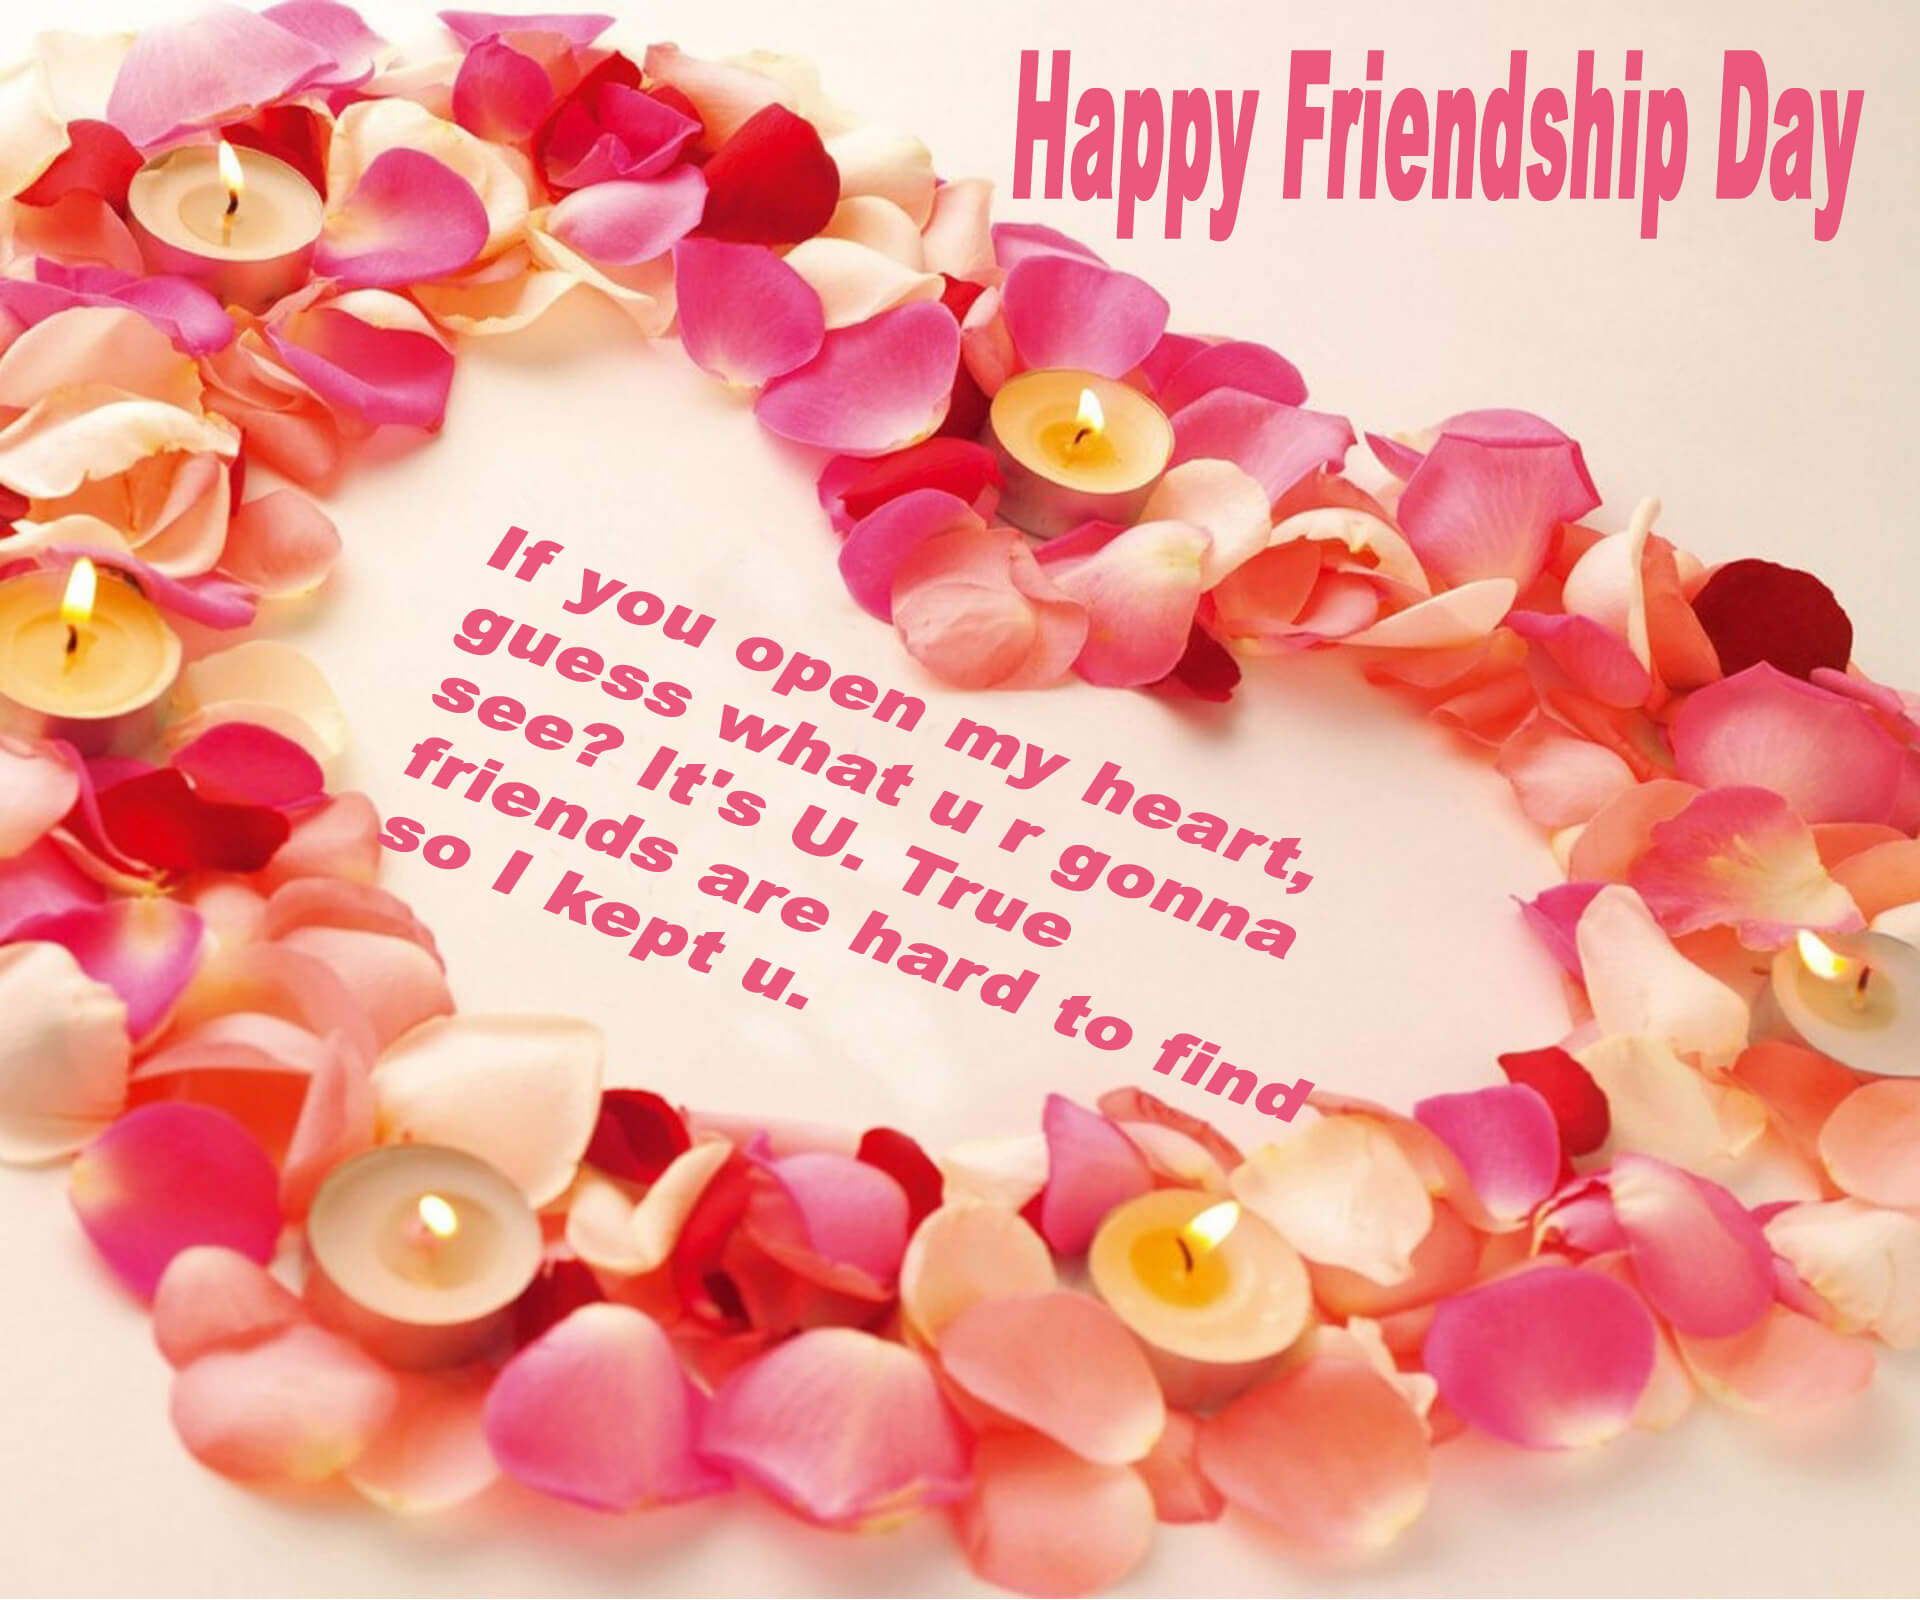 Happy Friendship Day Best Friend Quotes Hd Wallpaper